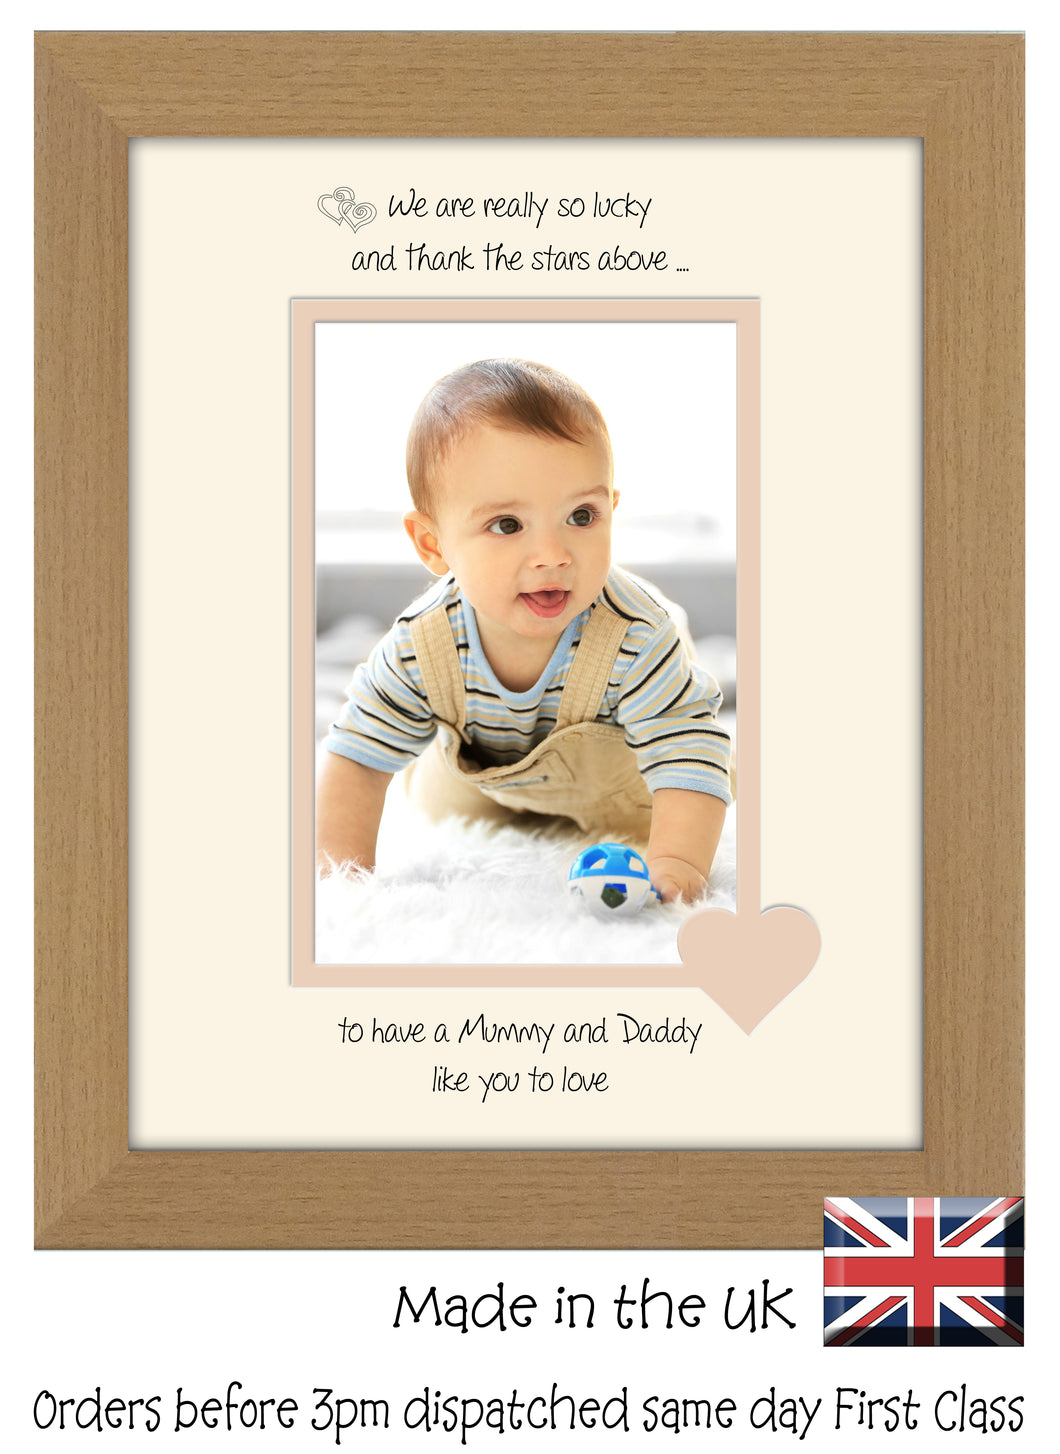 Mummy & Daddy Photo Frame - We Thank the stars Mummy and Daddy Portrait photo frame 6